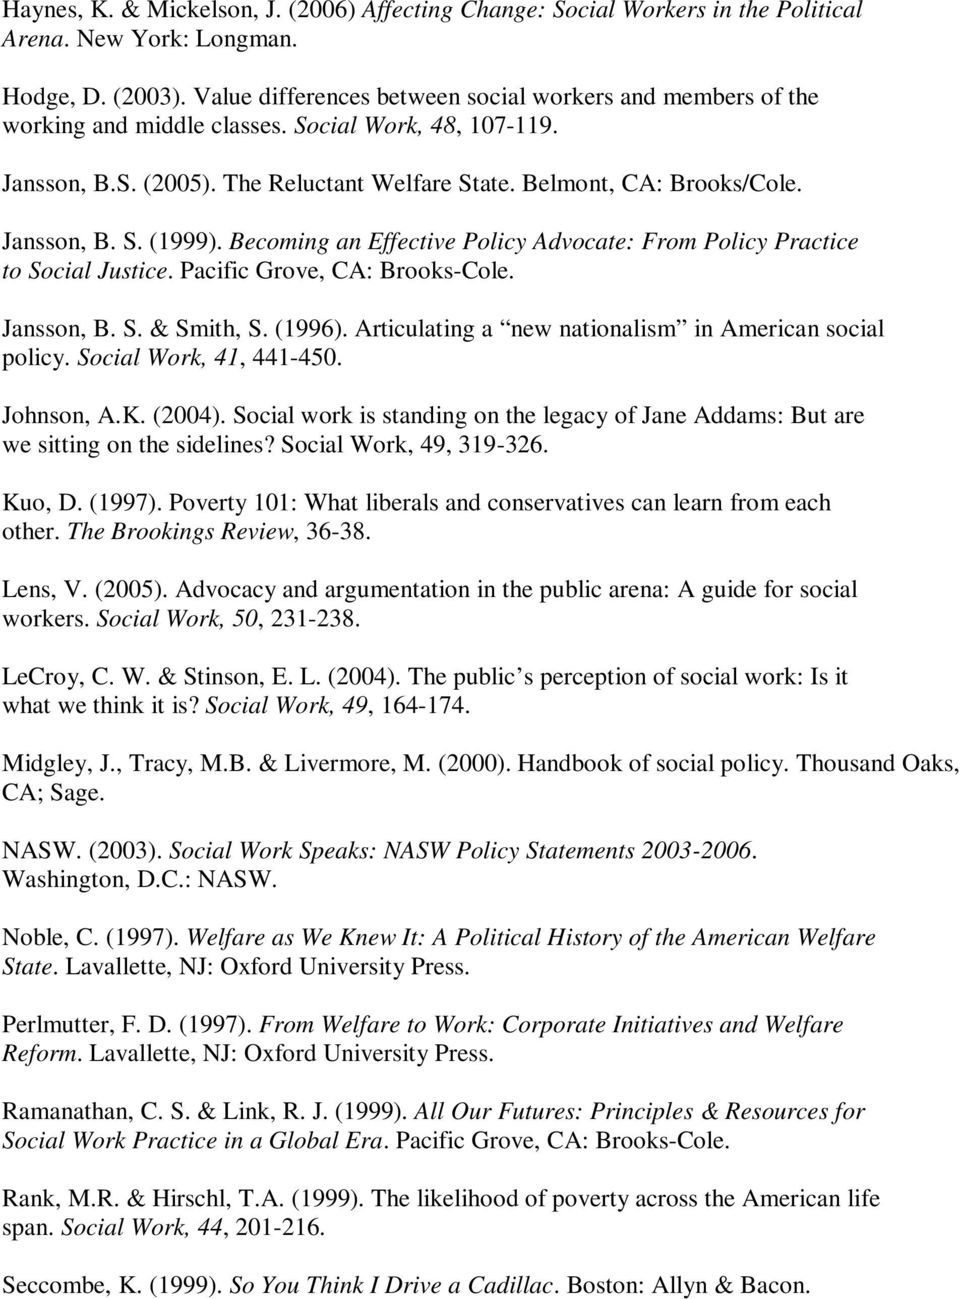 Jansson, B. S. (1999). Becoming an Effective Policy Advocate: From Policy Practice to Social Justice. Pacific Grove, CA: Brooks-Cole. Jansson, B. S. & Smith, S. (1996).